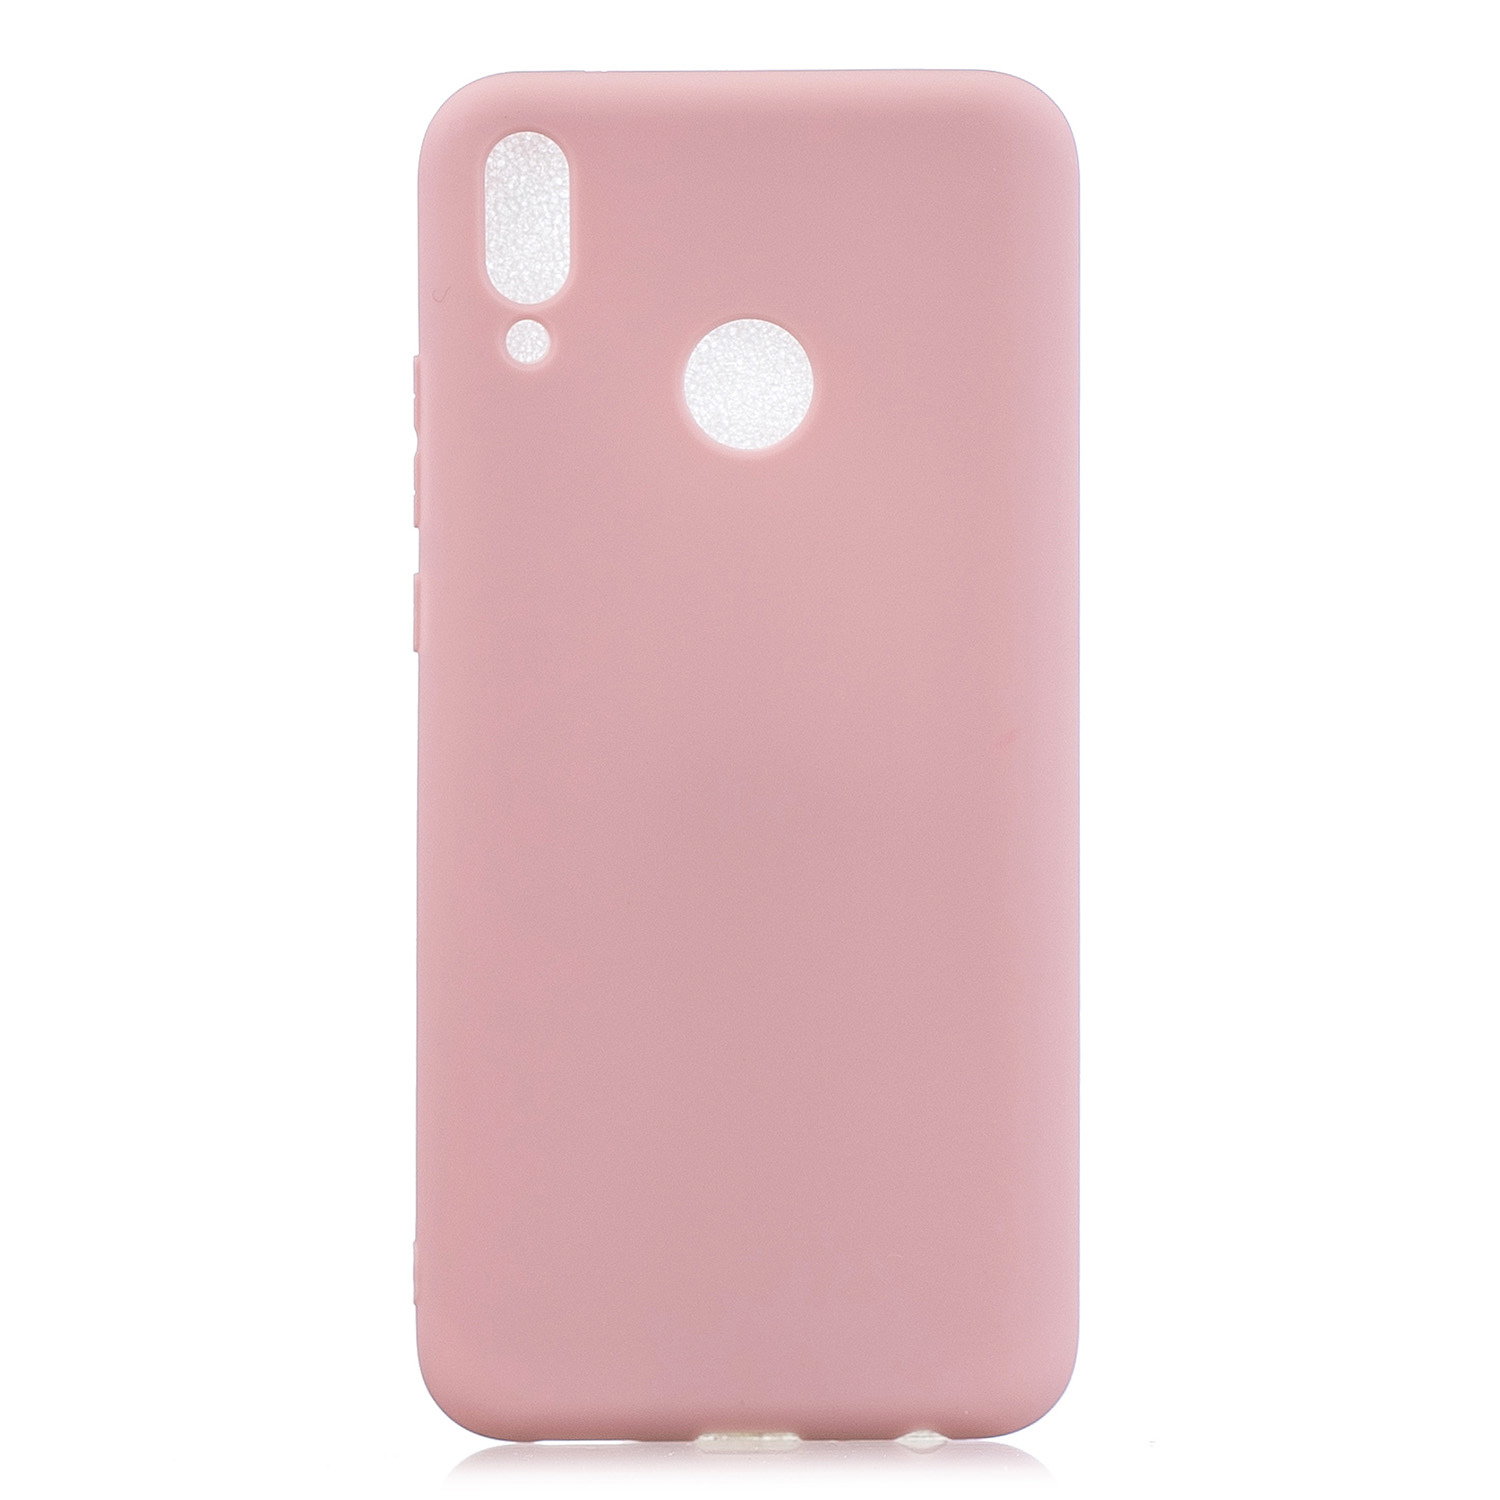 For HUAWEI Y9 2019 Lovely Candy Color Matte TPU Anti-scratch Non-slip Protective Cover Back Case 11